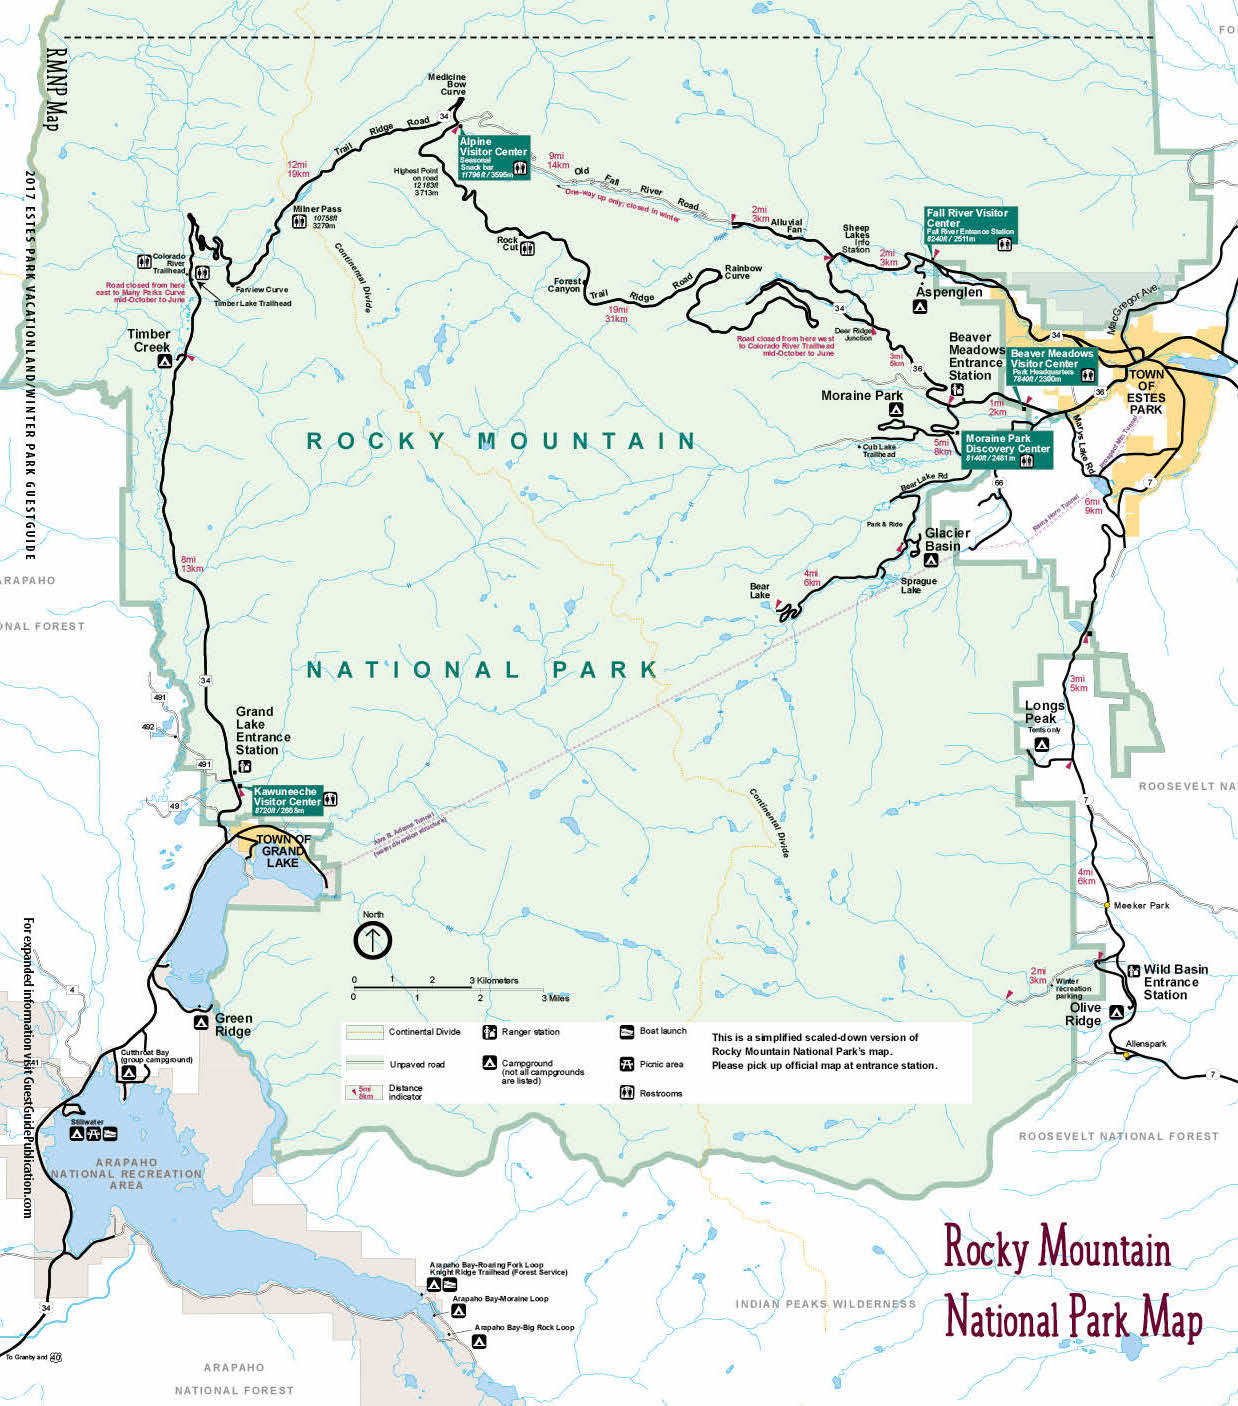 rocky mountain national park map  free guestguide publications  - rockymountainnationalpark